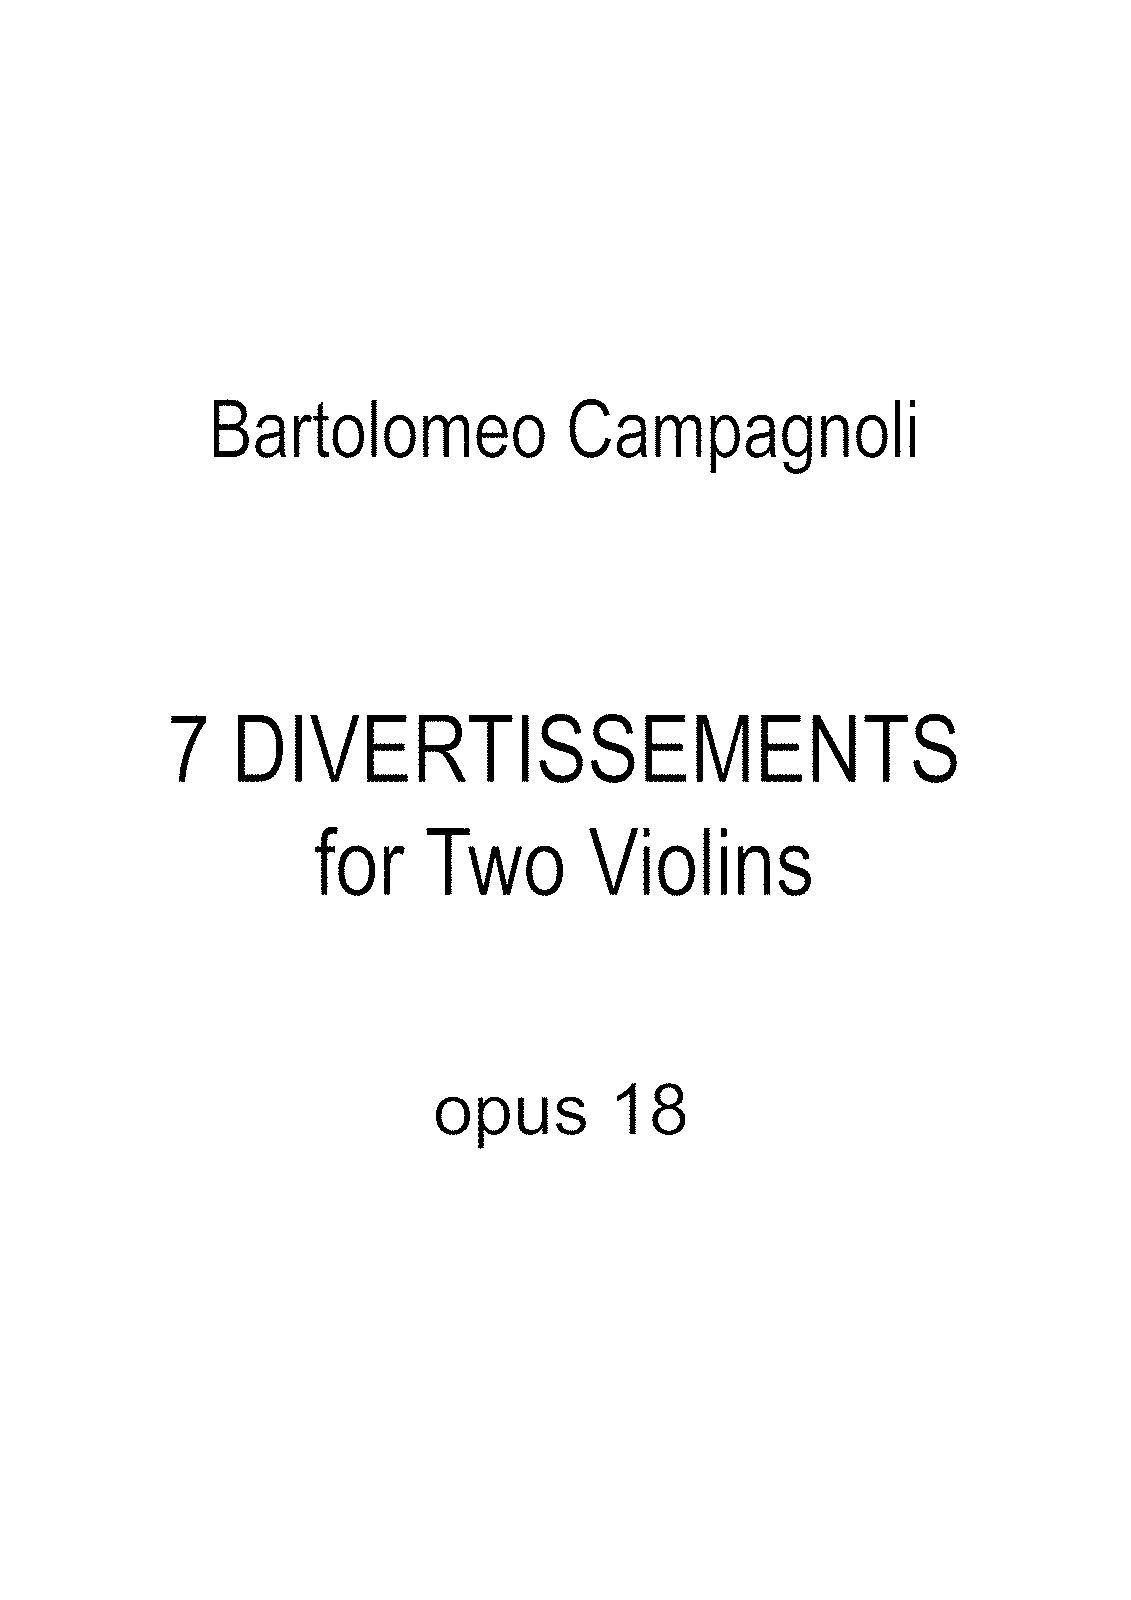 Campagnoli - 7 Divertissements For 2 Violins Op18.pdf